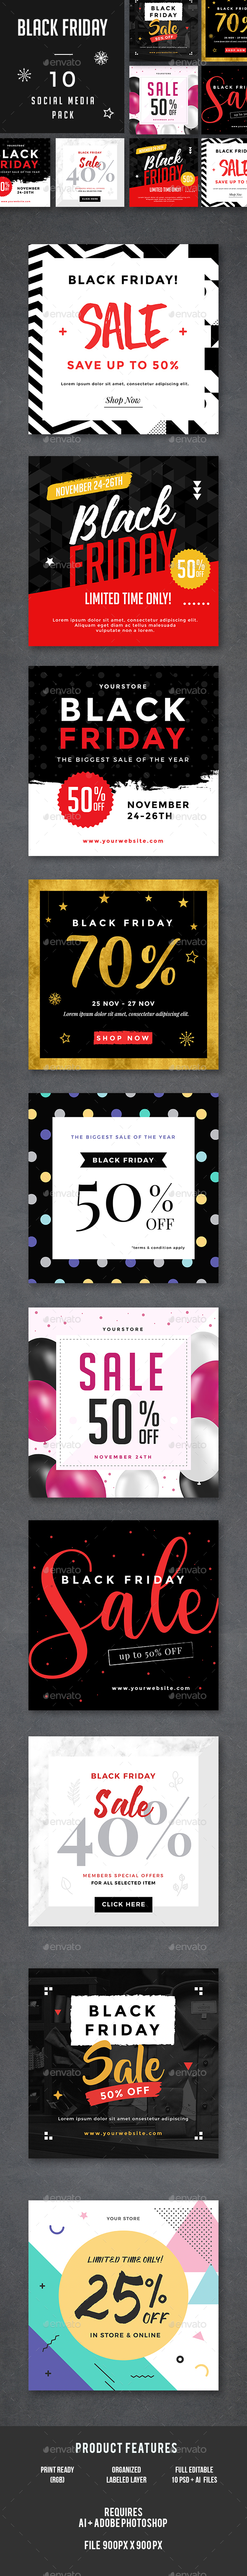 Black Friday Banners - Social Media Web Elements